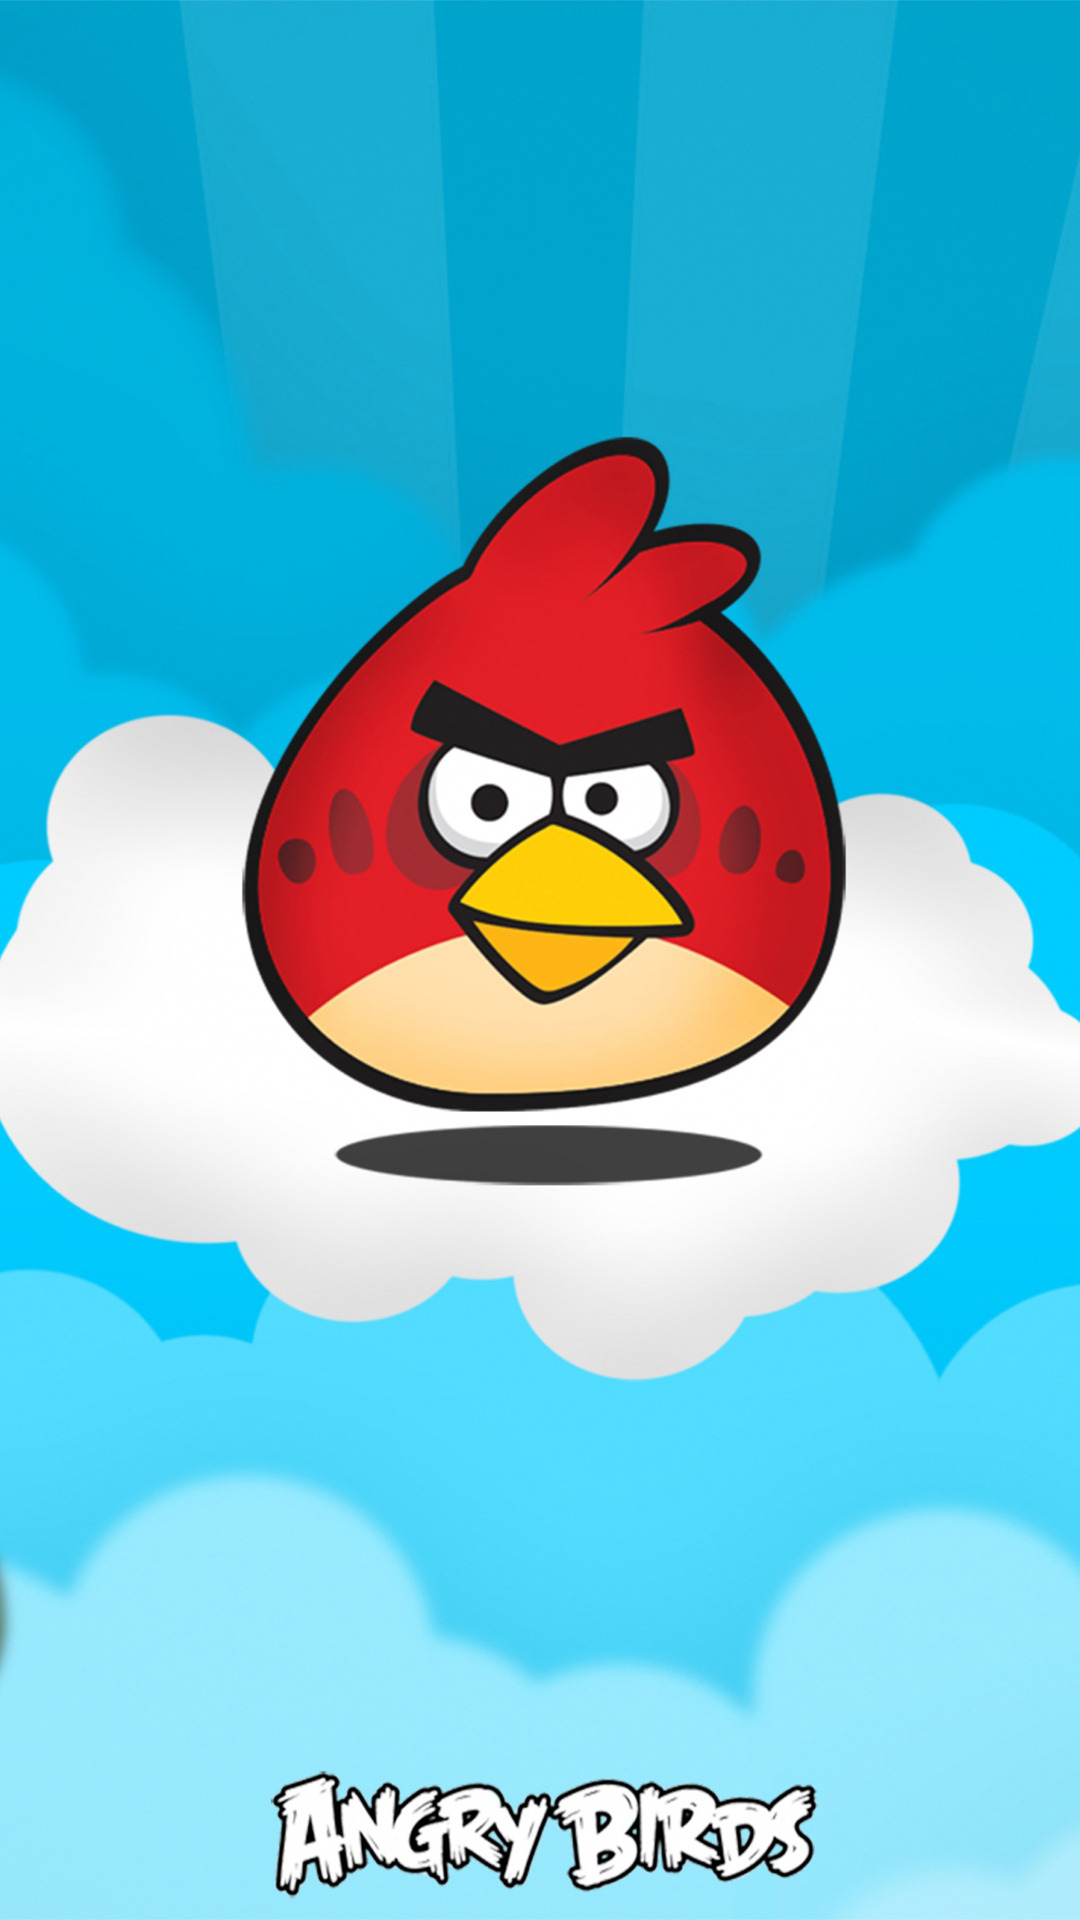 Full 3d Wallpapers Free Download Download Angry Birds Hd Wallpapers For Mobile Gallery